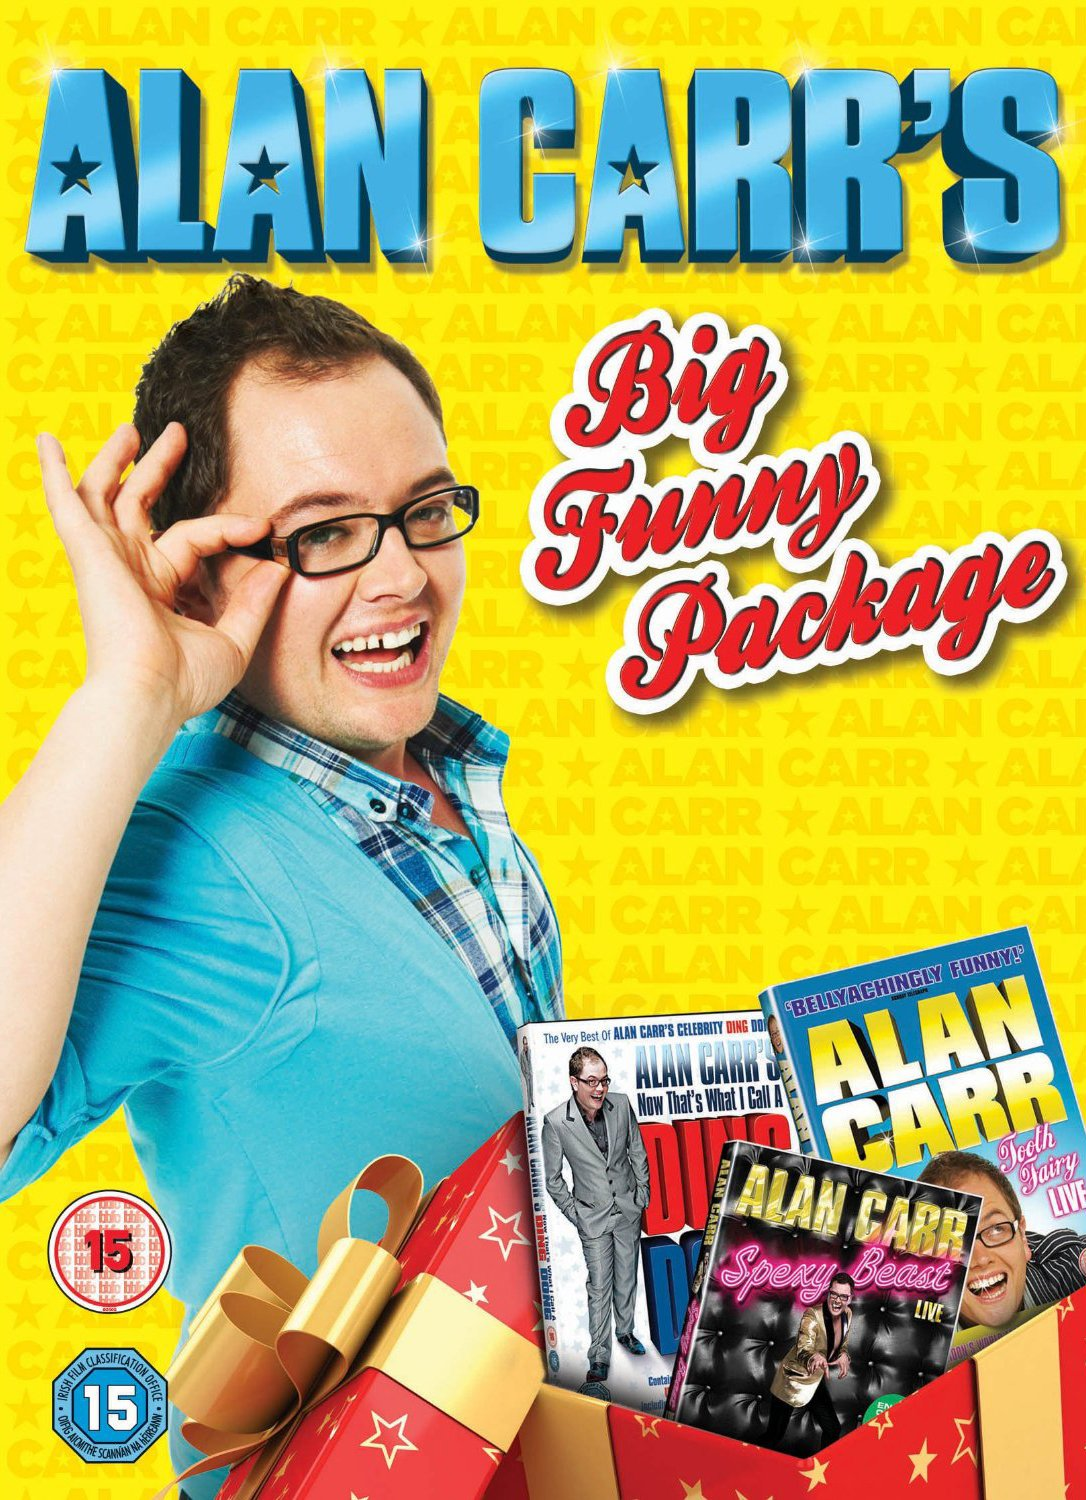 Christmas door decorating davina mccall interview 2015 celebrity interviews - Alan Carr S Big Funny Package Tooth Fairy Live Now That S What I Call A Ding Dong Spexy Beast Live Dvd Amazon Co Uk Alan Carr Dvd Blu Ray